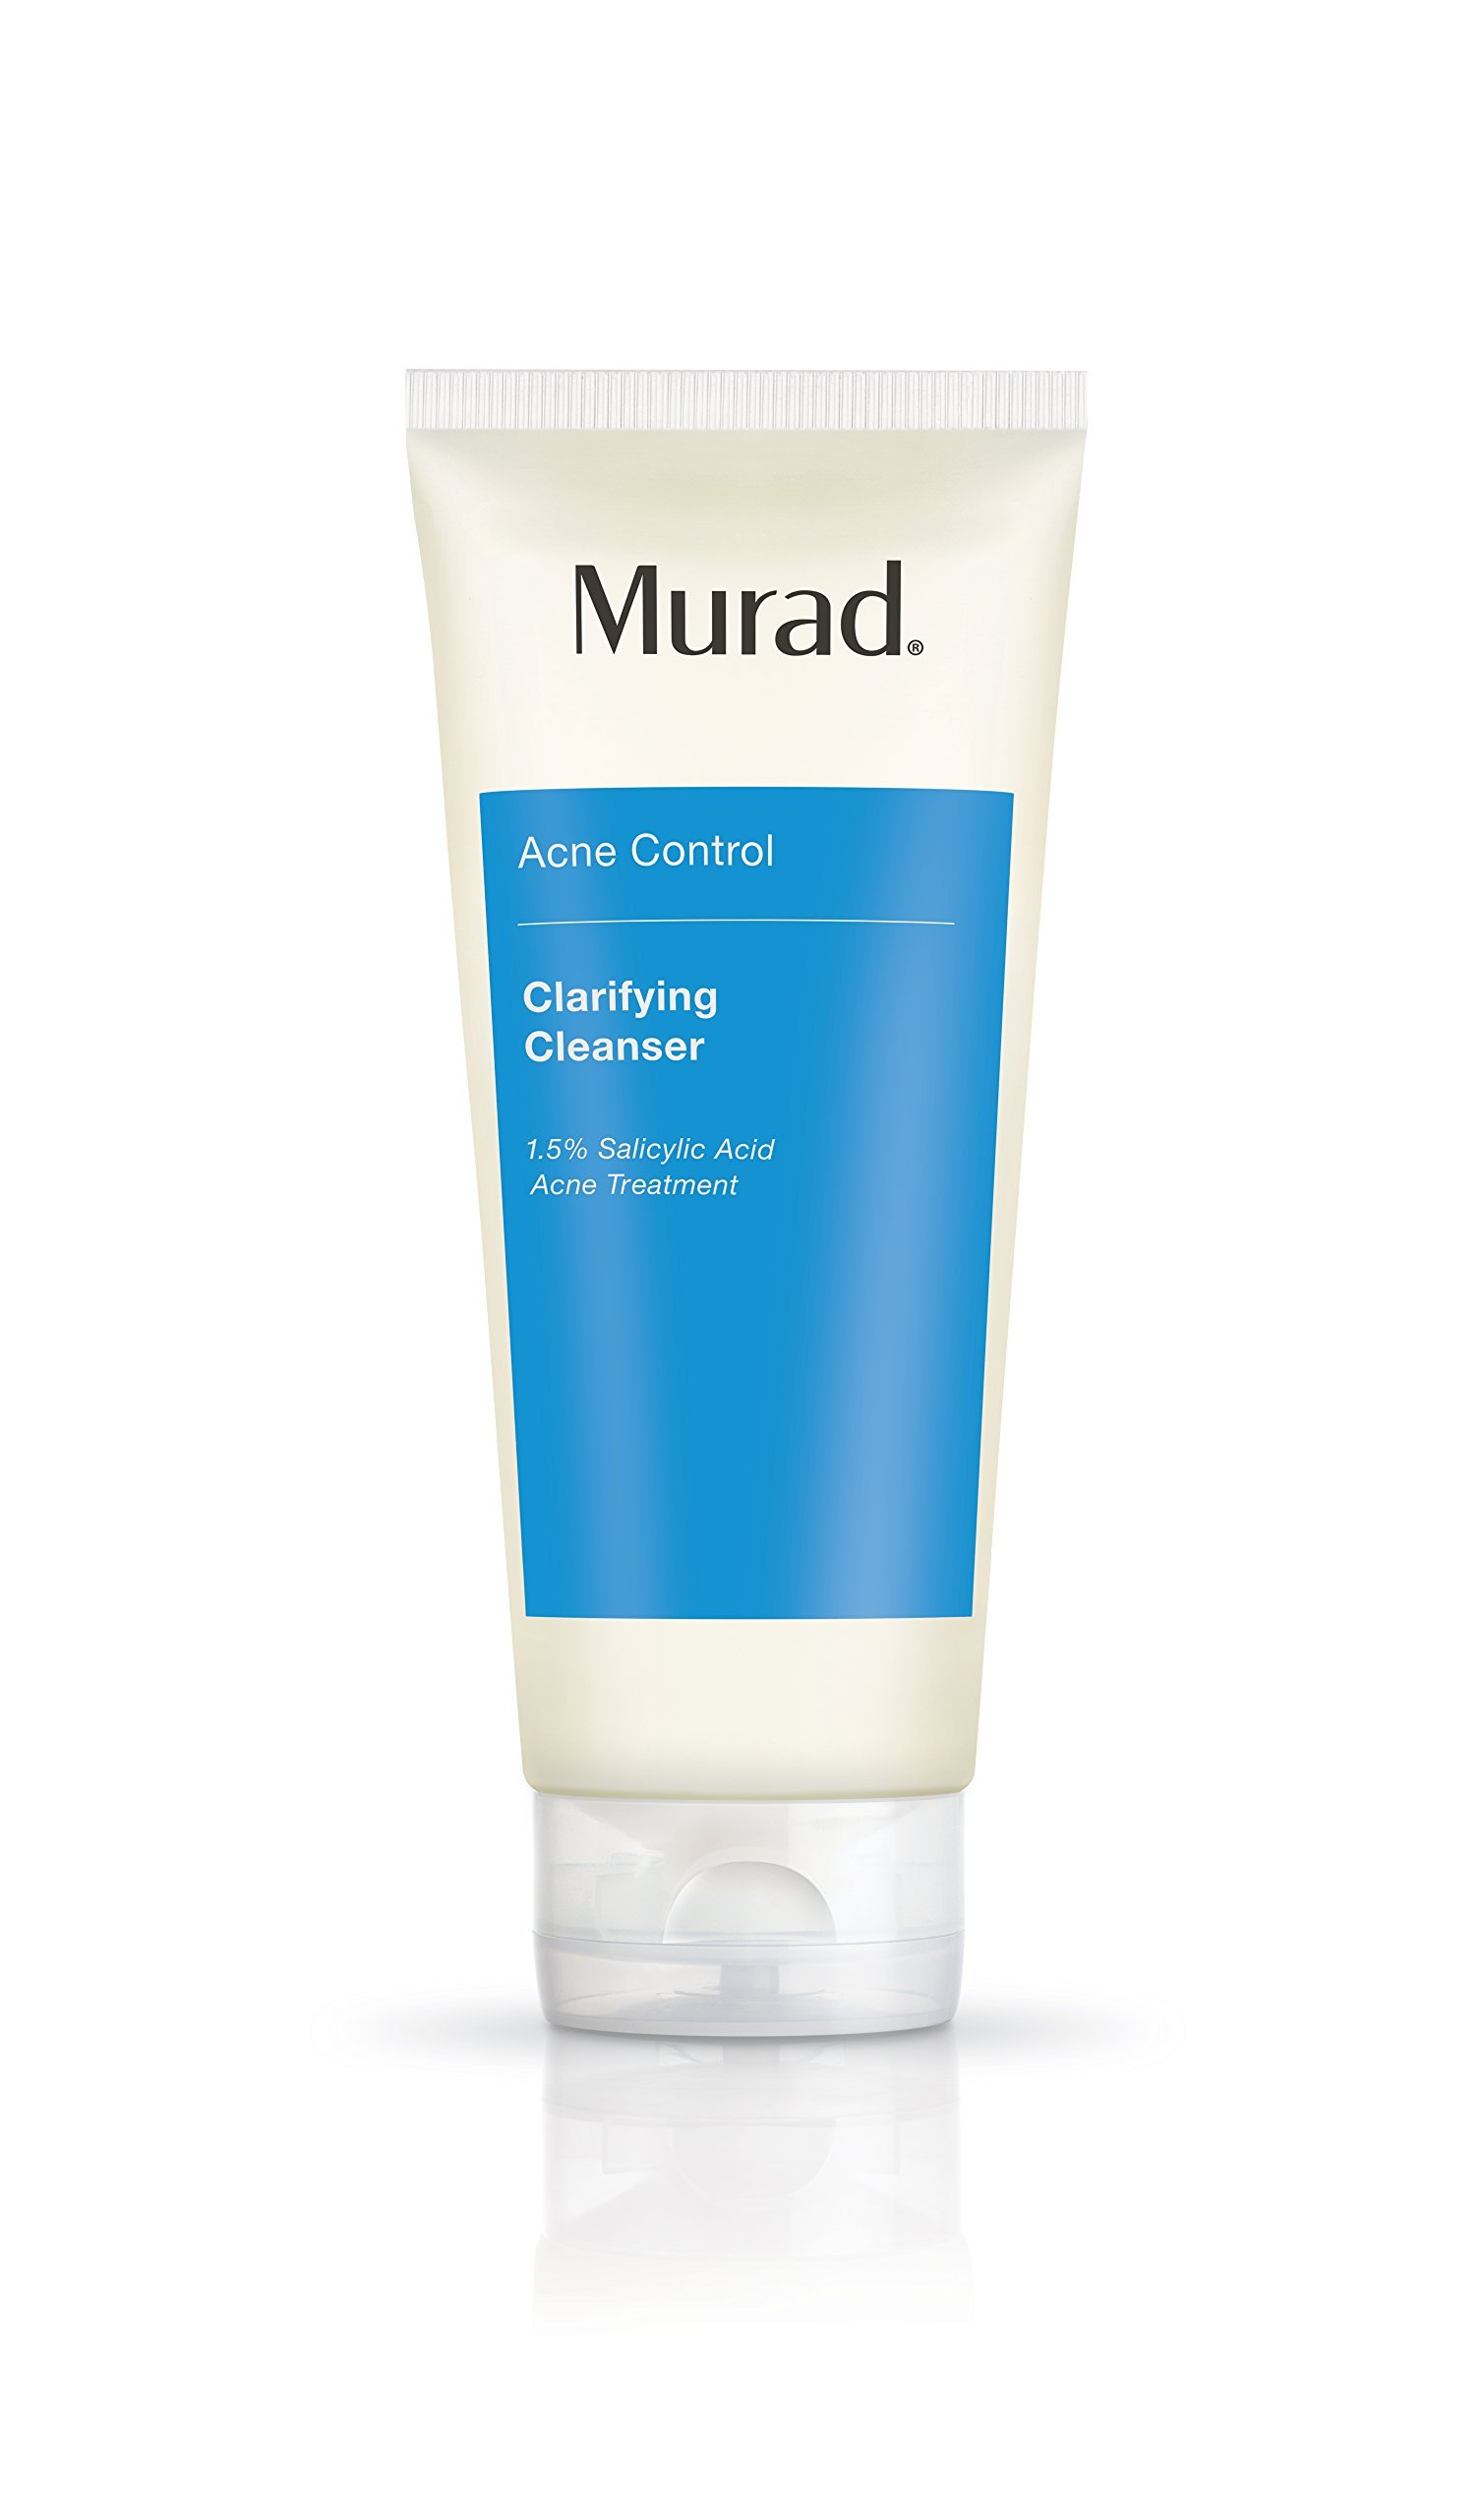 Murad Acne Clarifying Cleanser - Step 1 Cleanse/Tone (6.75 fl oz), Powerful Daily Gel Facial Cleanser that Helps Reduce Blemishes and Future Breakouts with Green Tea Extract and 1.5% Salicylic Acid